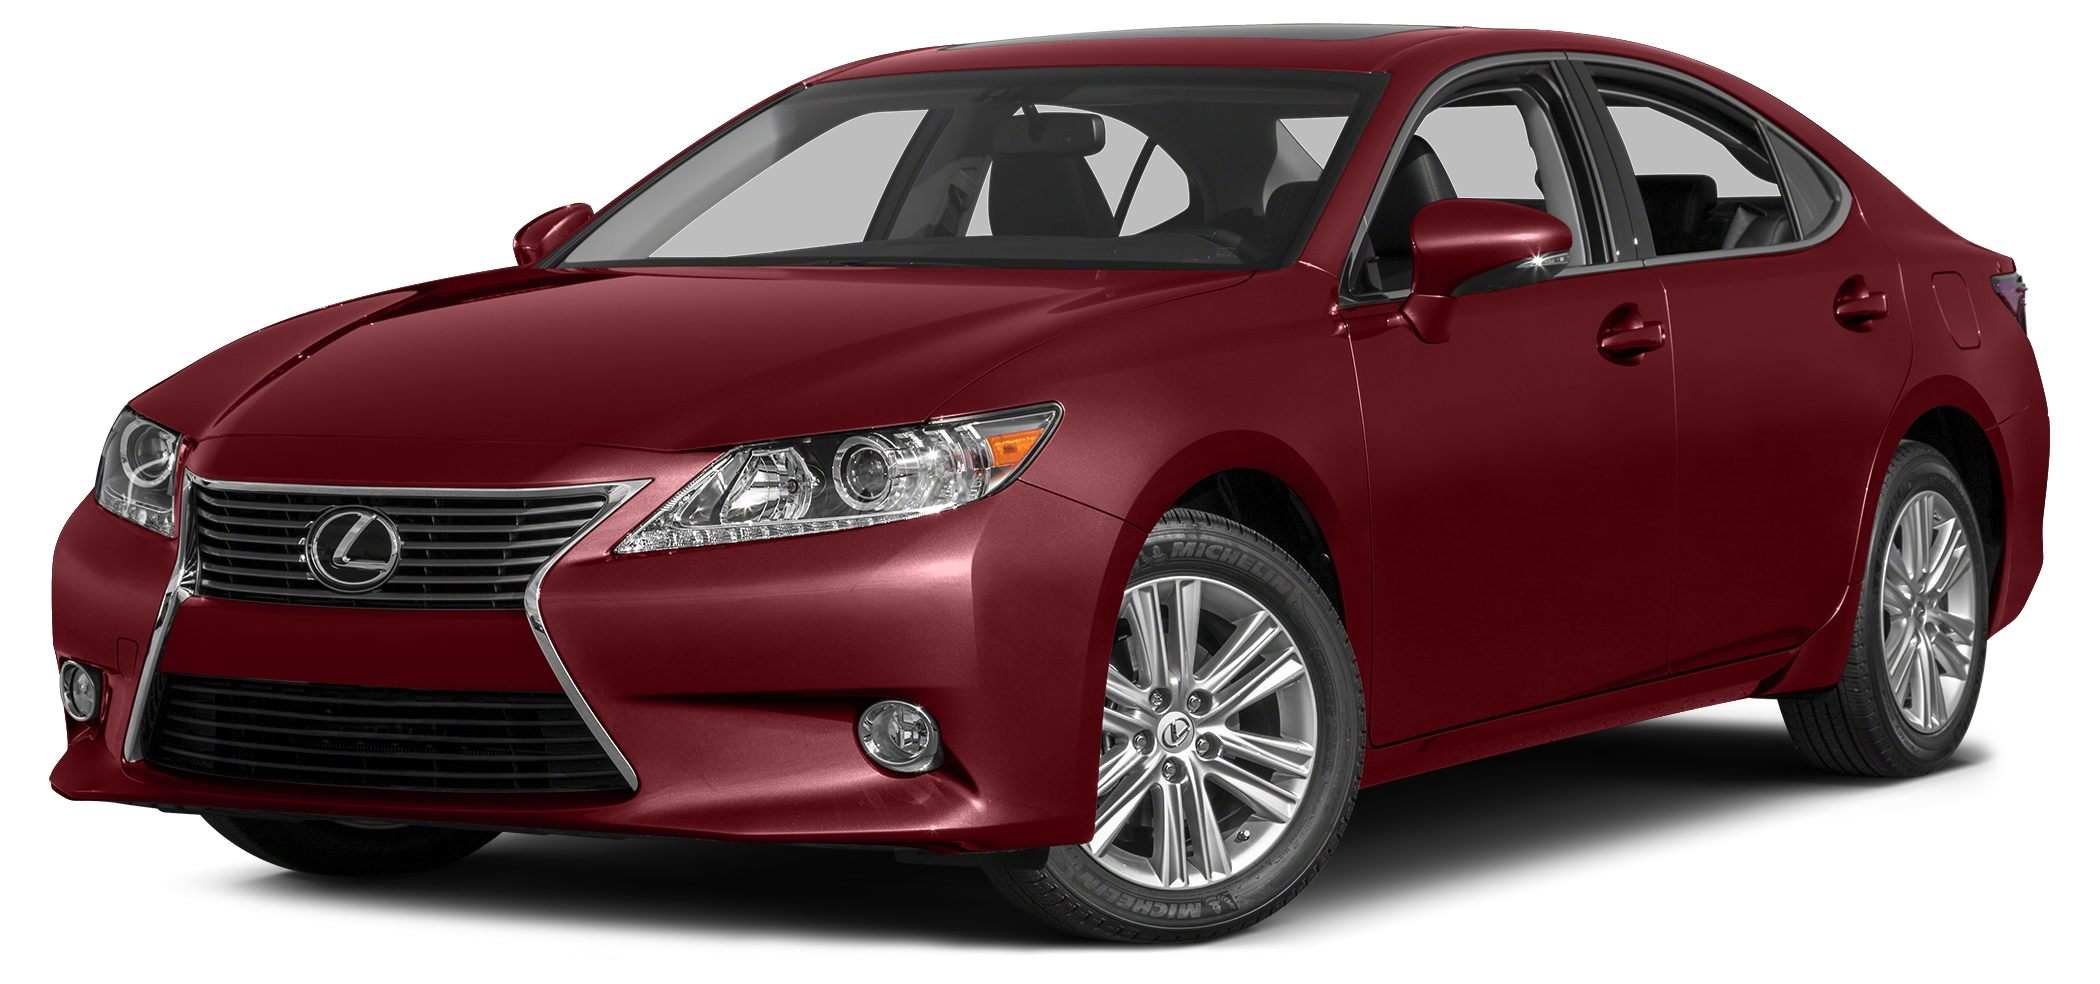 2013 Lexus ES 350 Base PREMIUM PLUS PKGNAVIGATIONLEXUS WARRANTYDEALER MAINTAINED1 OWNER